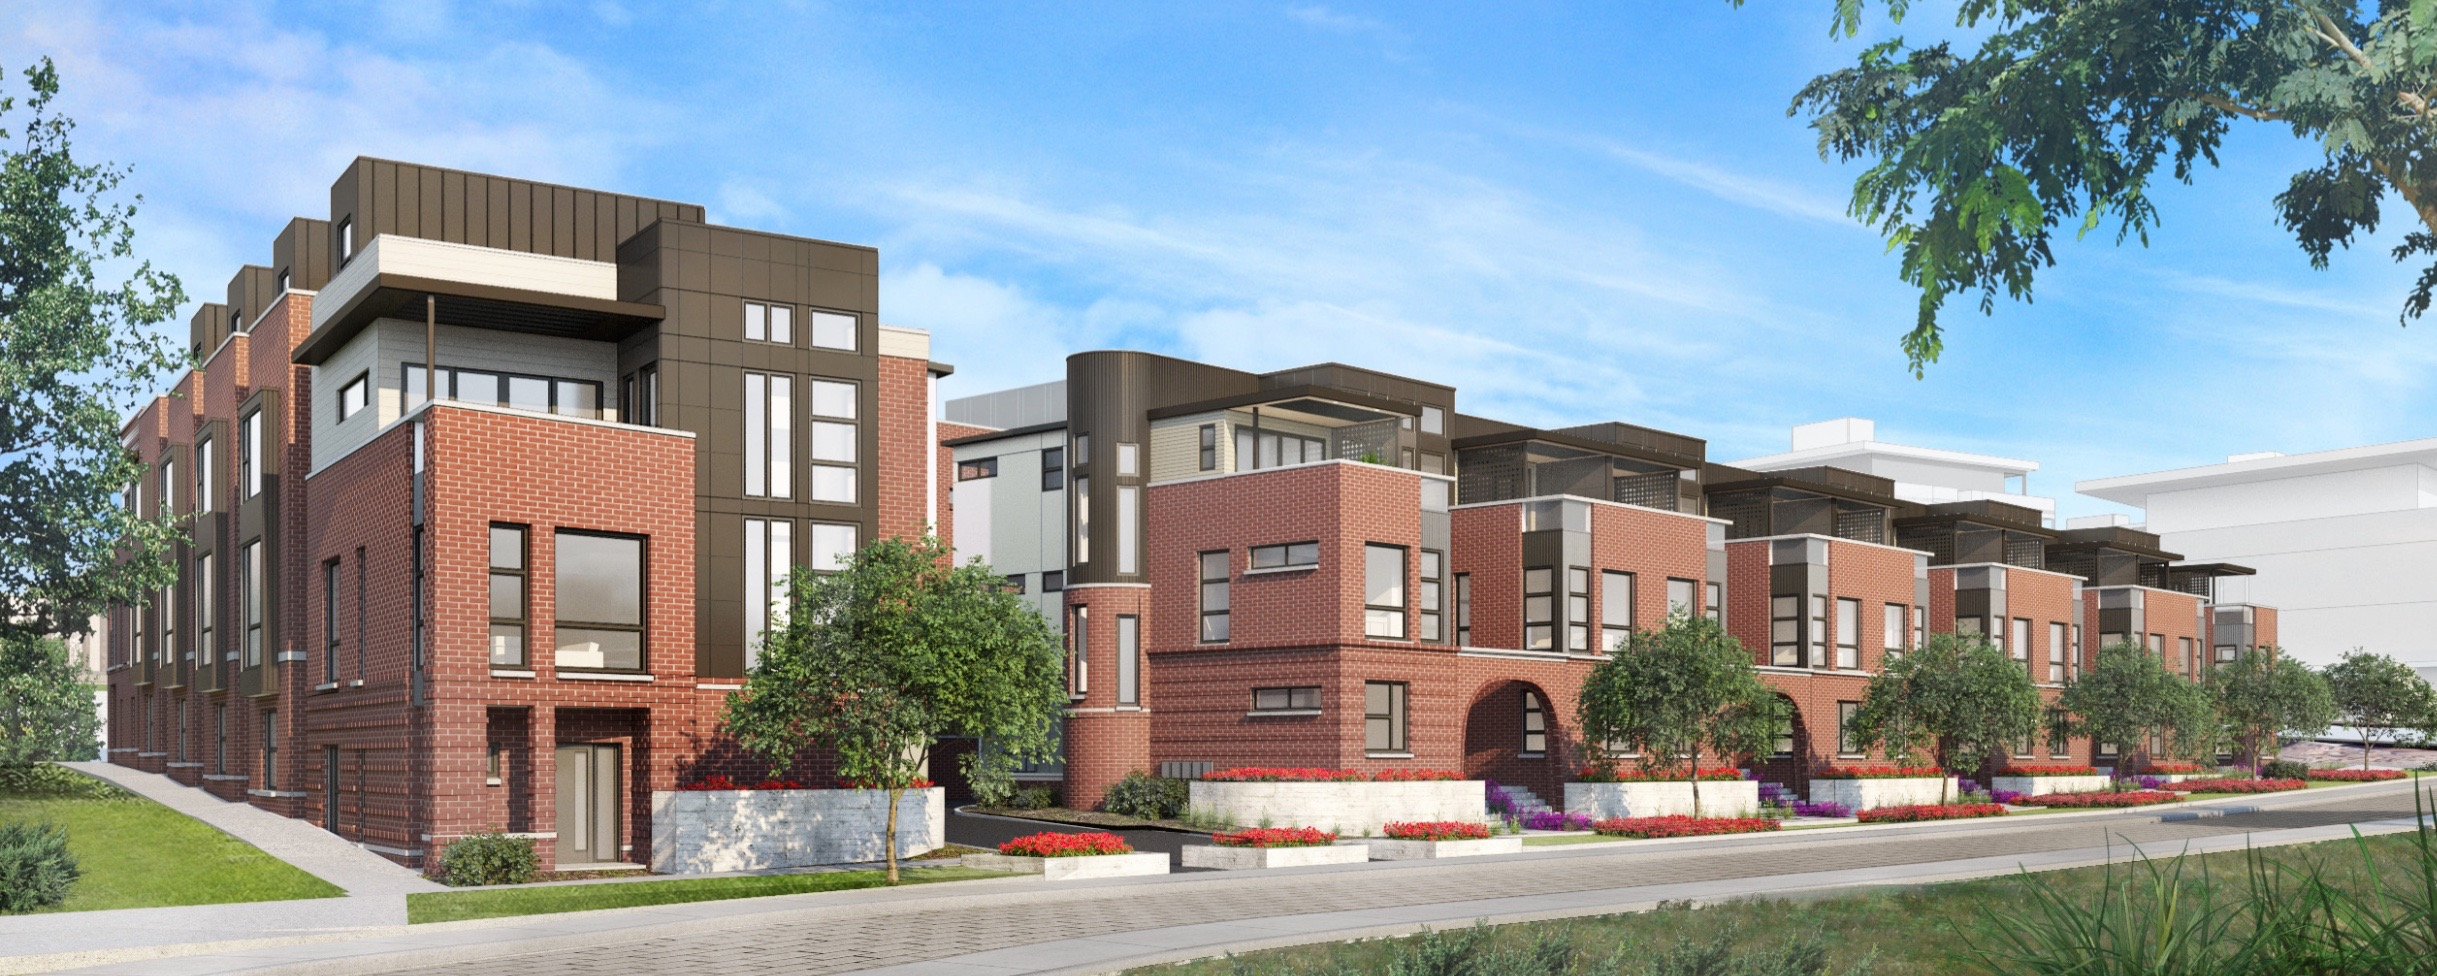 23 unit townhome project for rino denver urban review for Townhome layouts